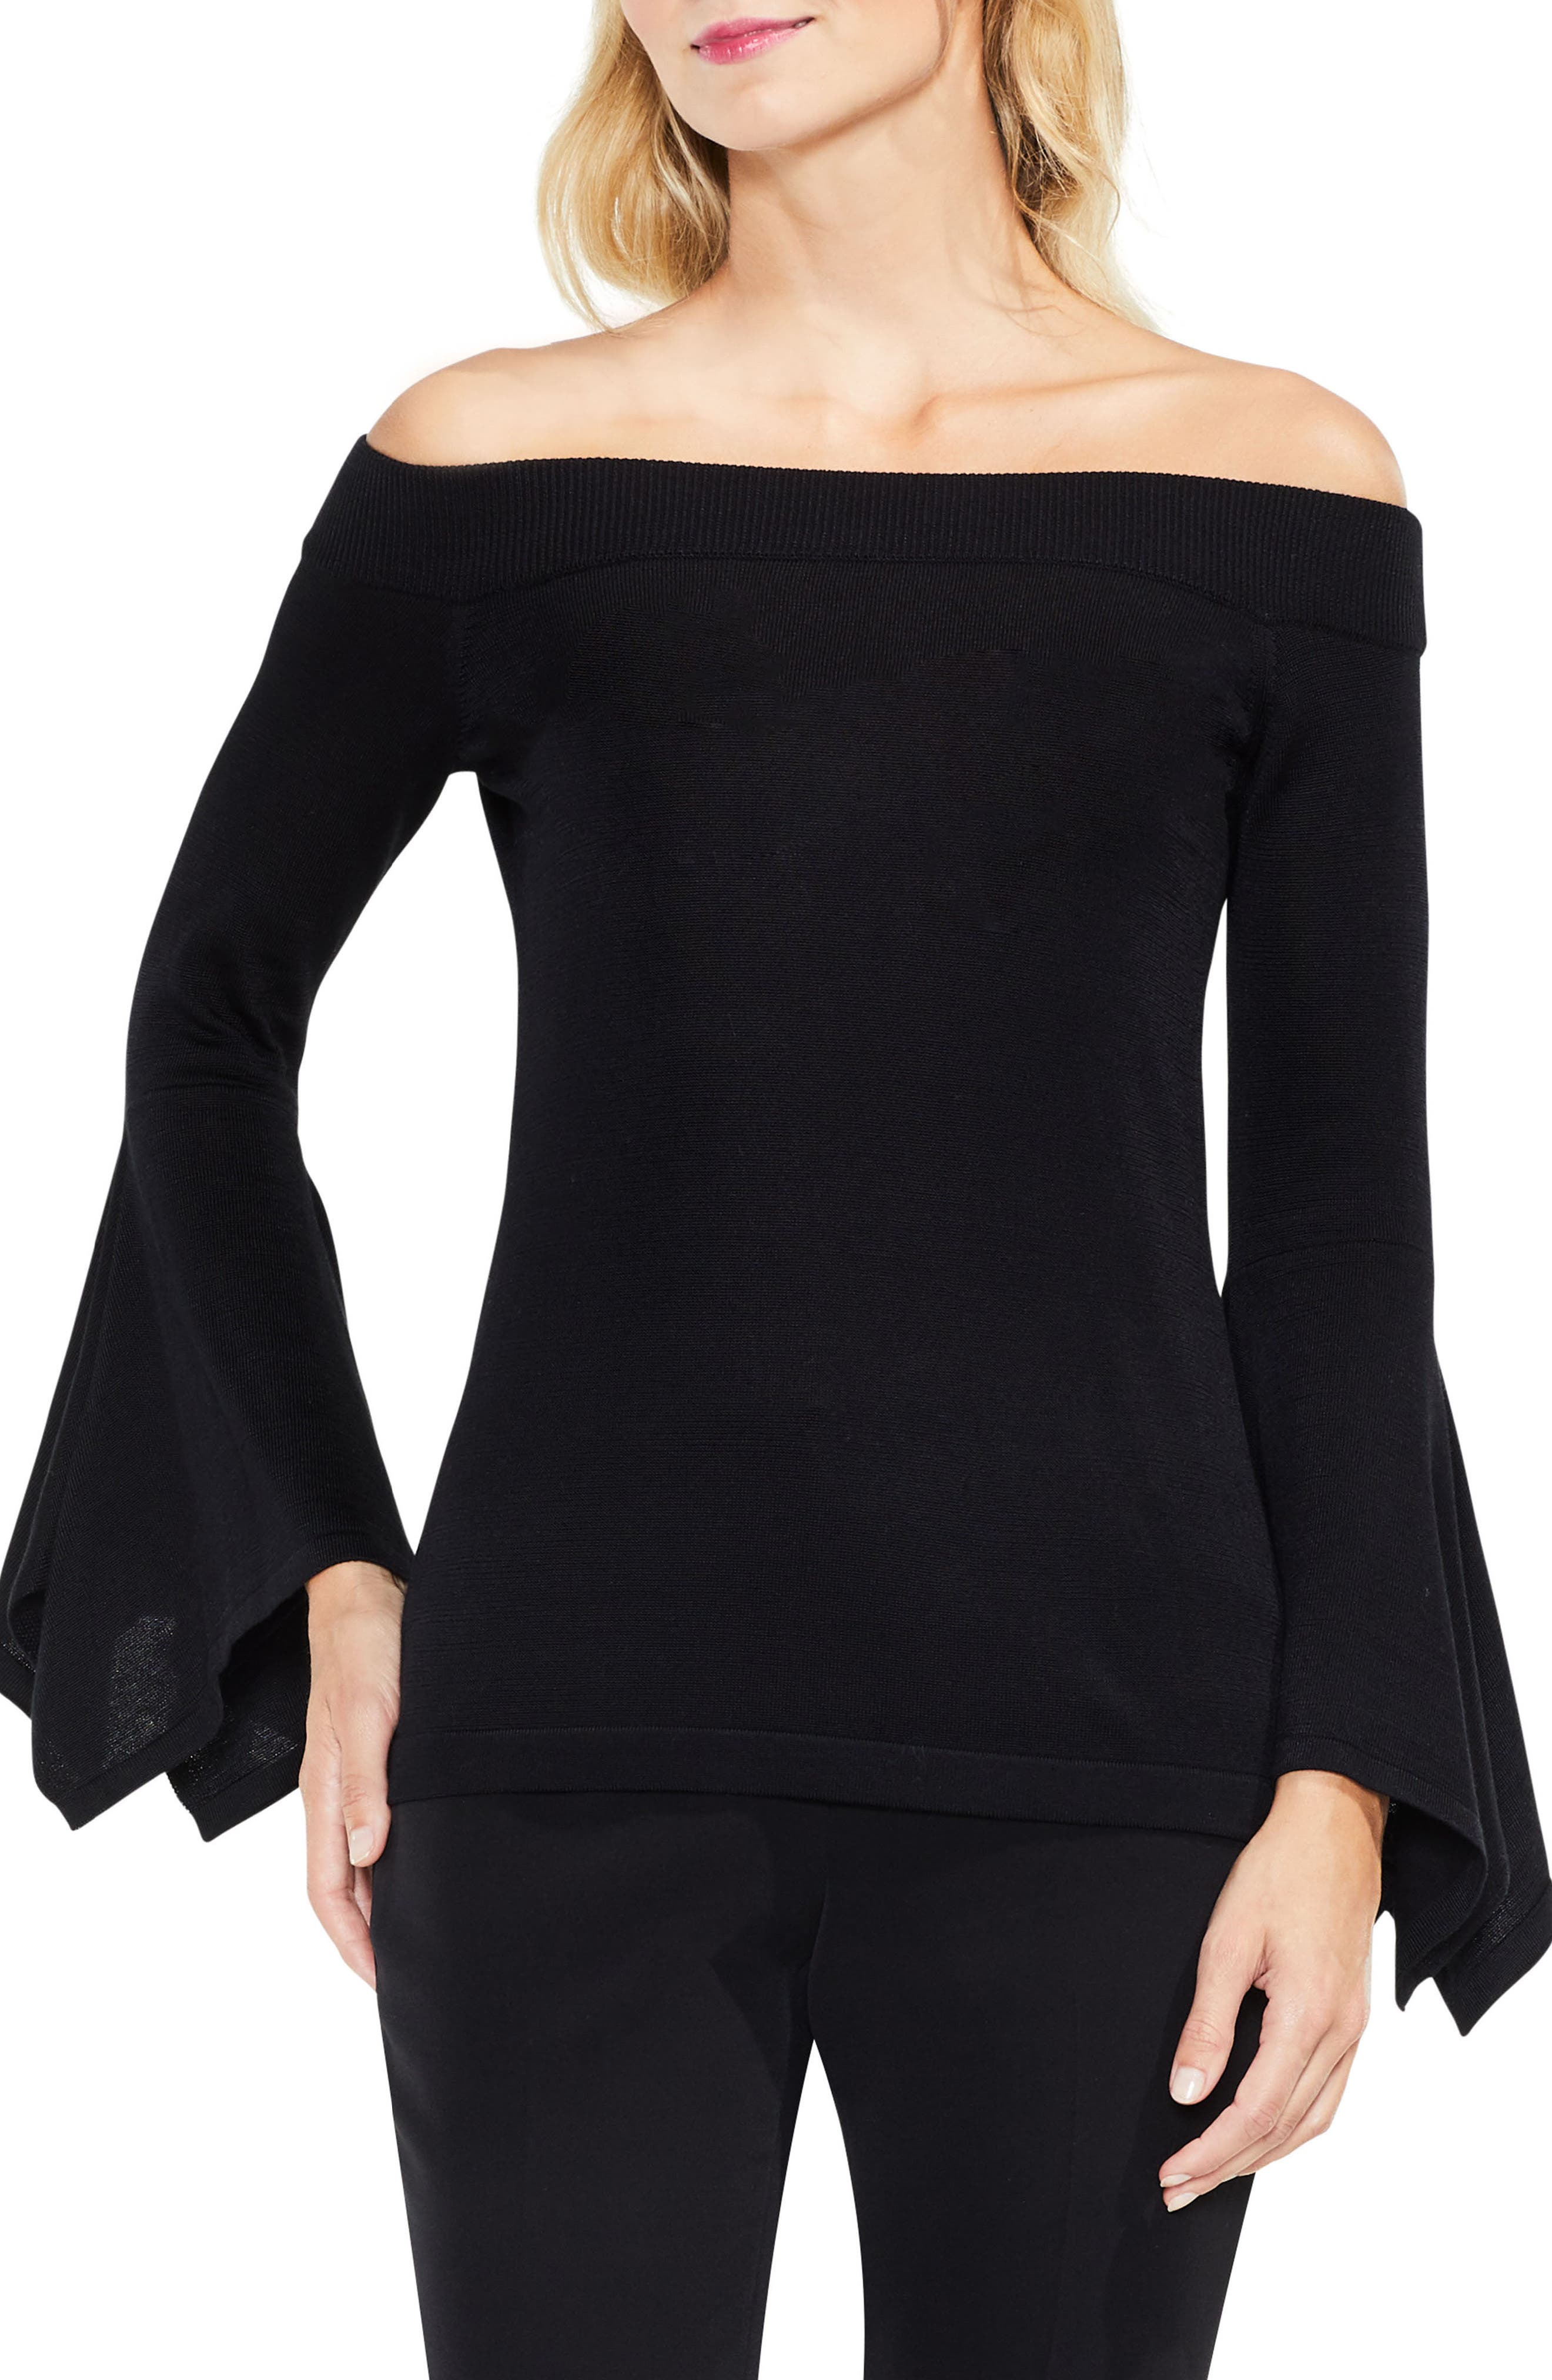 Alternate Image 1 Selected - Vince Camuto Off the Shoulder Handkerchief Bell Sleeve Sweater